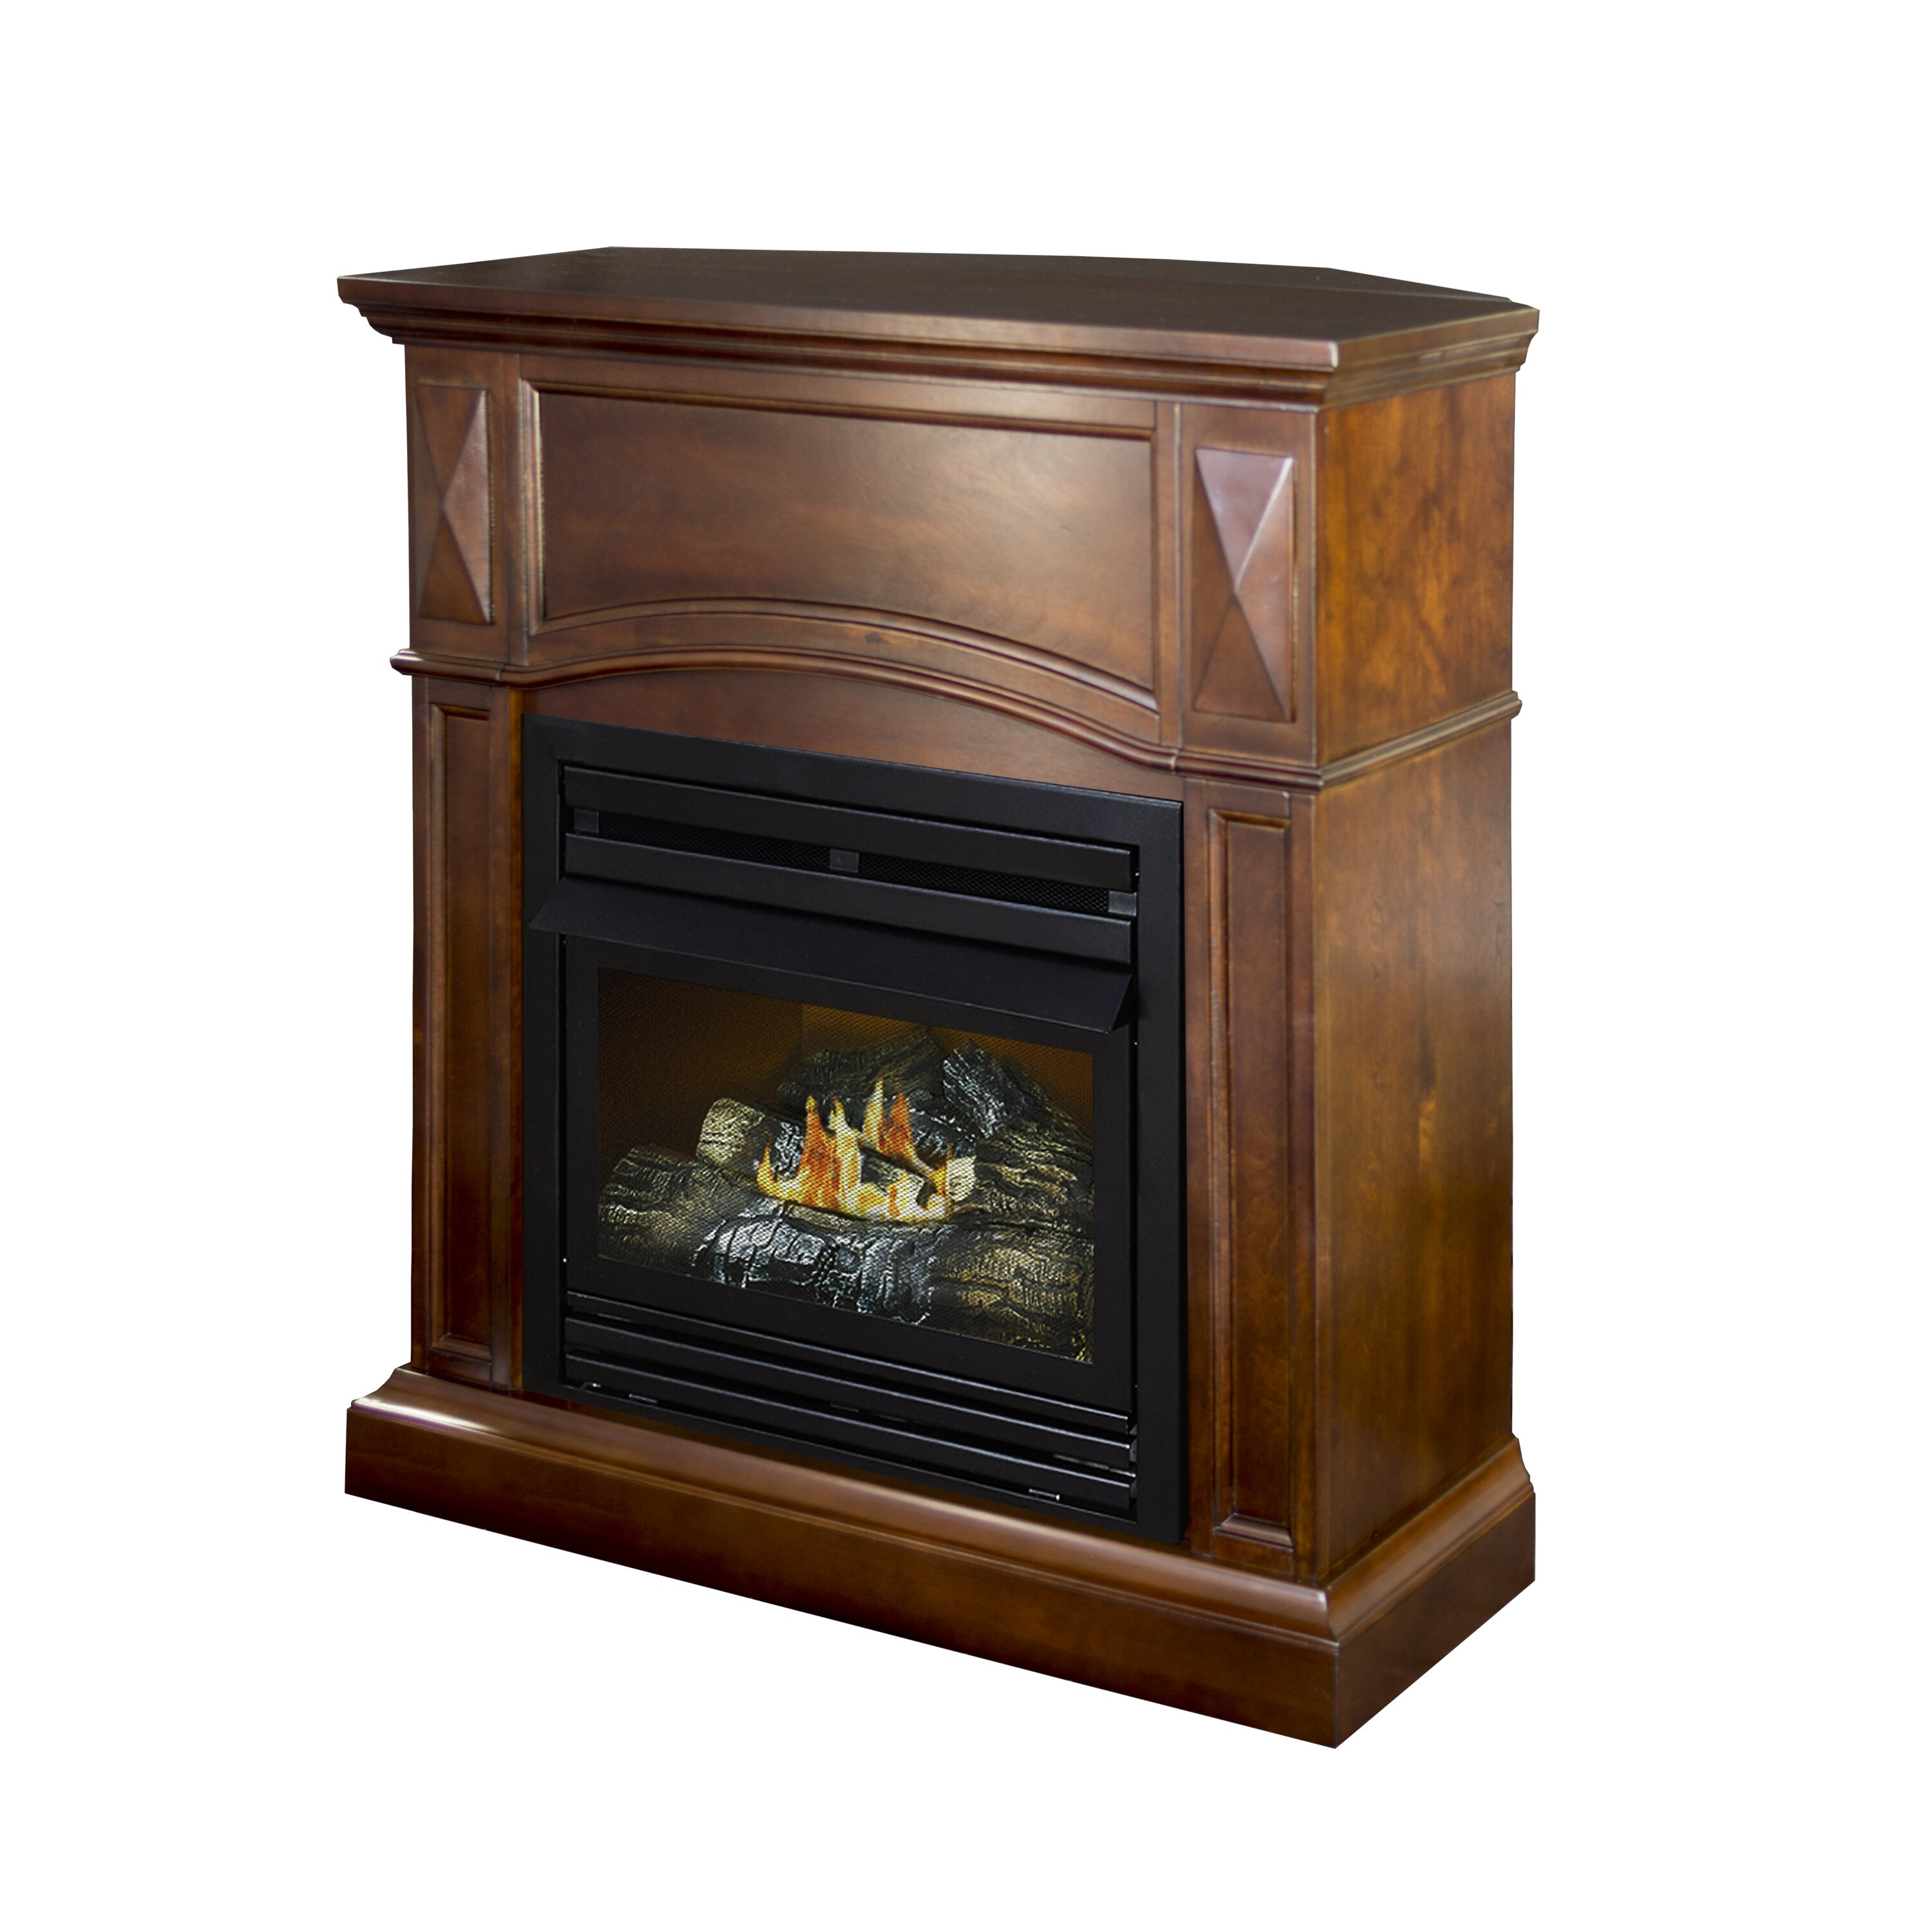 Pleasant Hearth Dual Fuel Vent Free Wall Mount Natural Gas Fireplace Reviews Wayfair